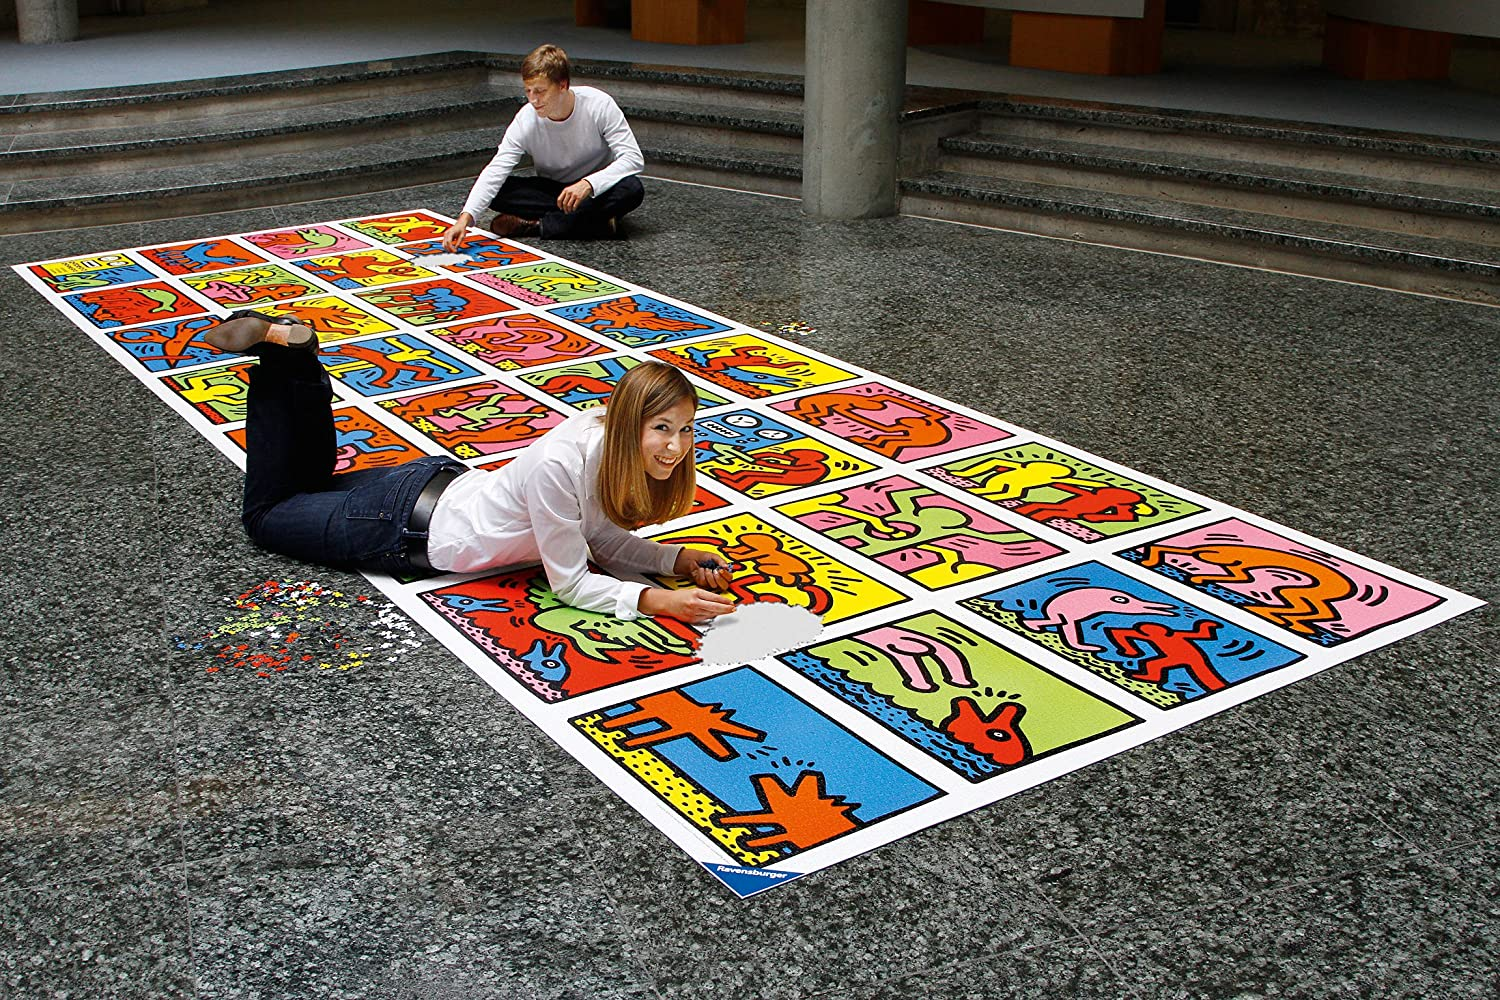 a 32,000 piece puzzle of Keith Haring's